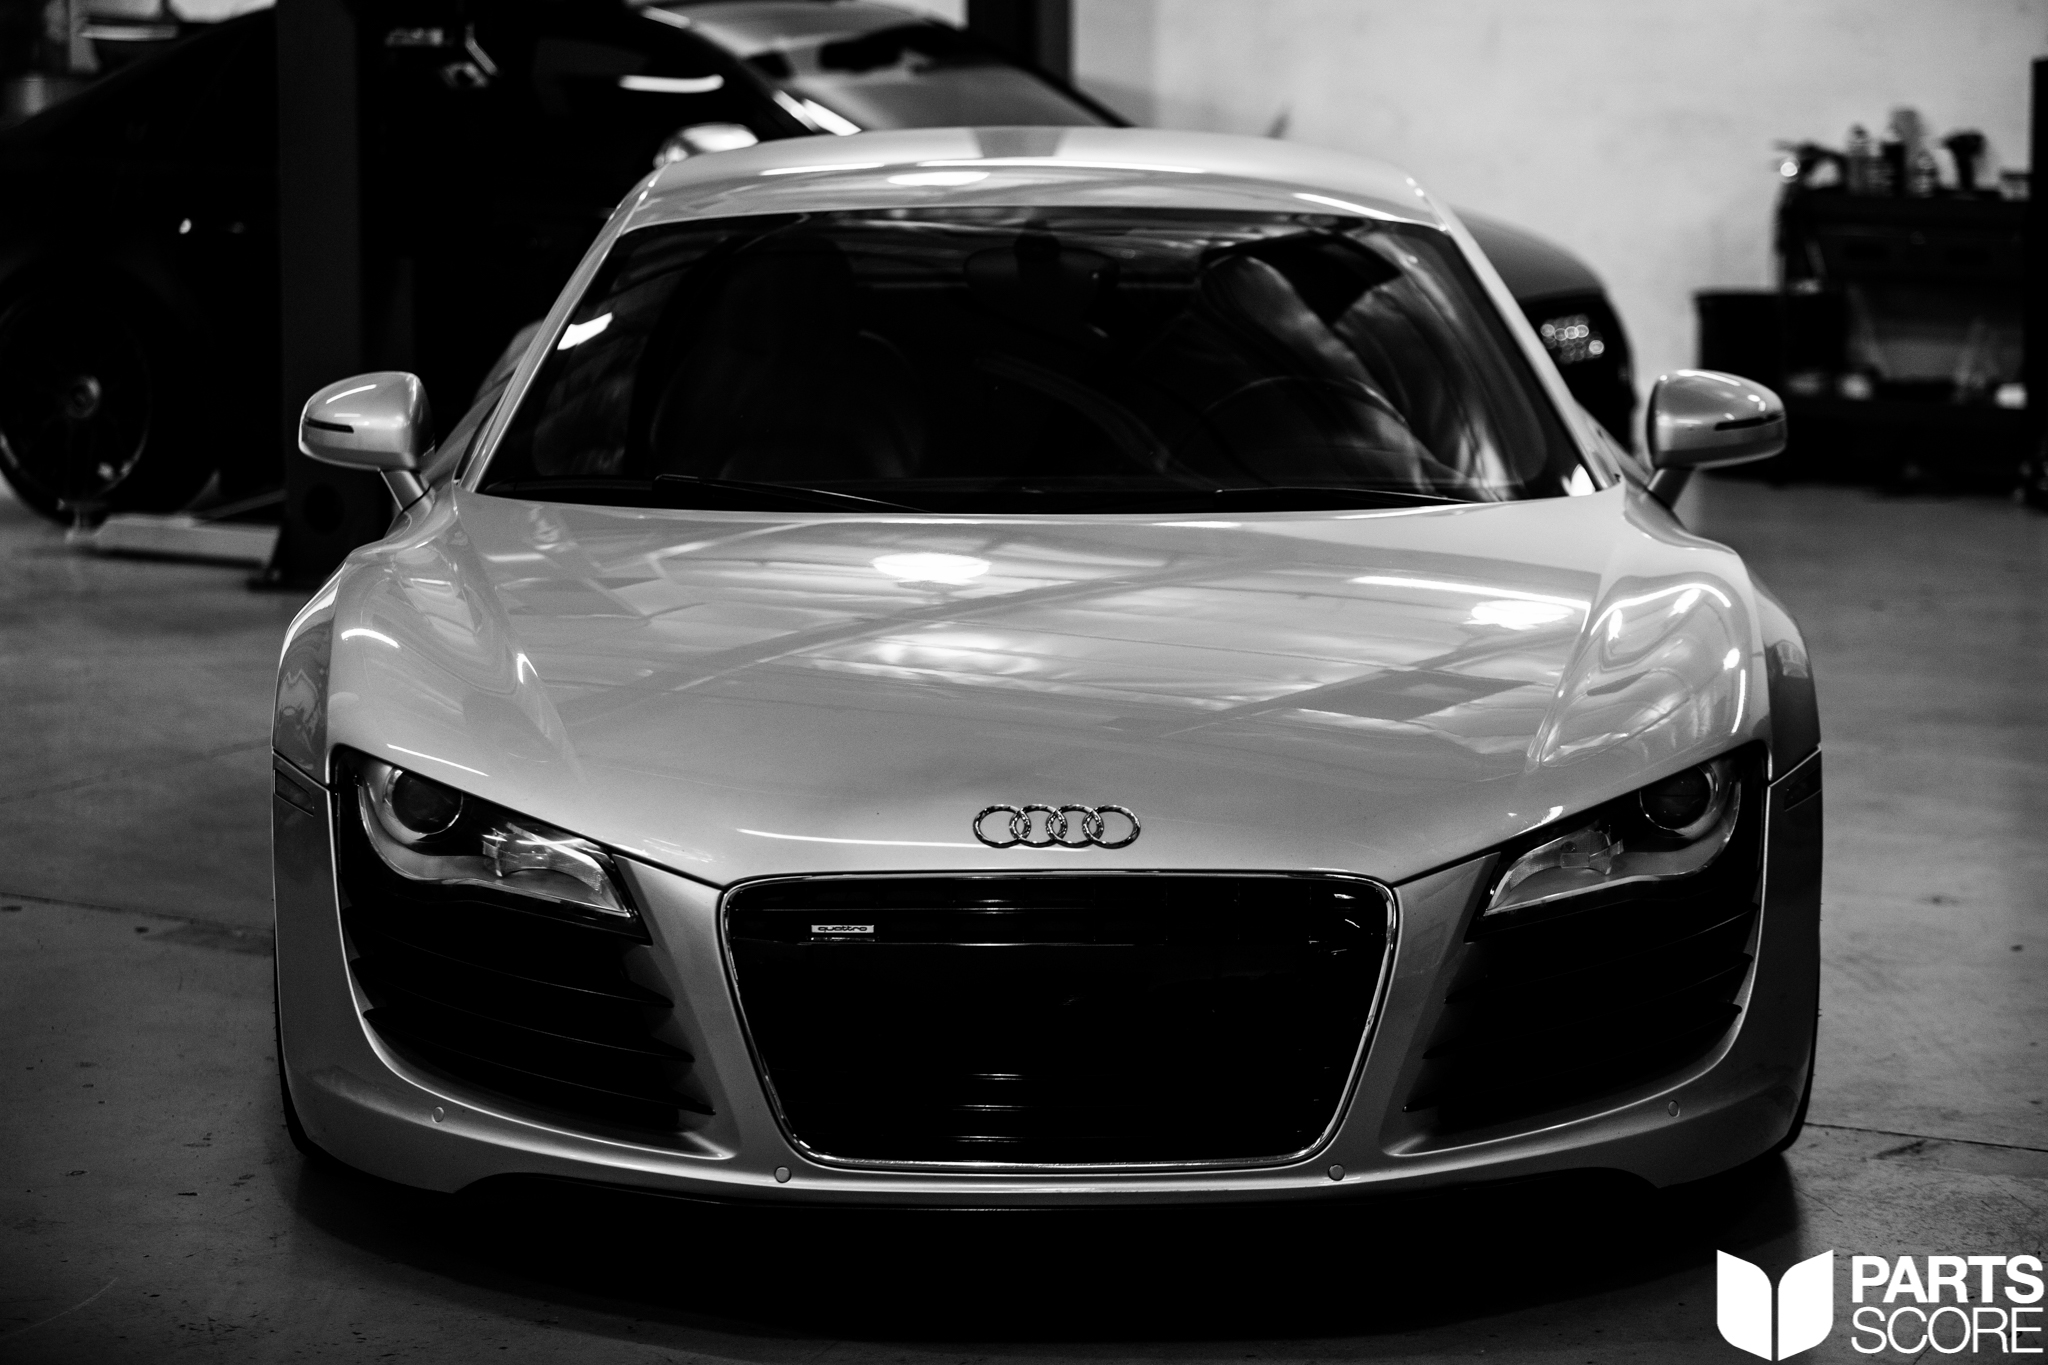 partsscore, parts score, audi, r8, audir8, audir8v8, audir8v10, v10, v8, edcfailure, audi r8 shock failure, shock failure, shocks, edc, audi edc failure, twinturbo, twinturbor8, twinturbov8, twinturbov10, heffnerperformance, heffnewr8, heffner, kwsuspension, bcracing, handrsuspension, bilsteinsuspension